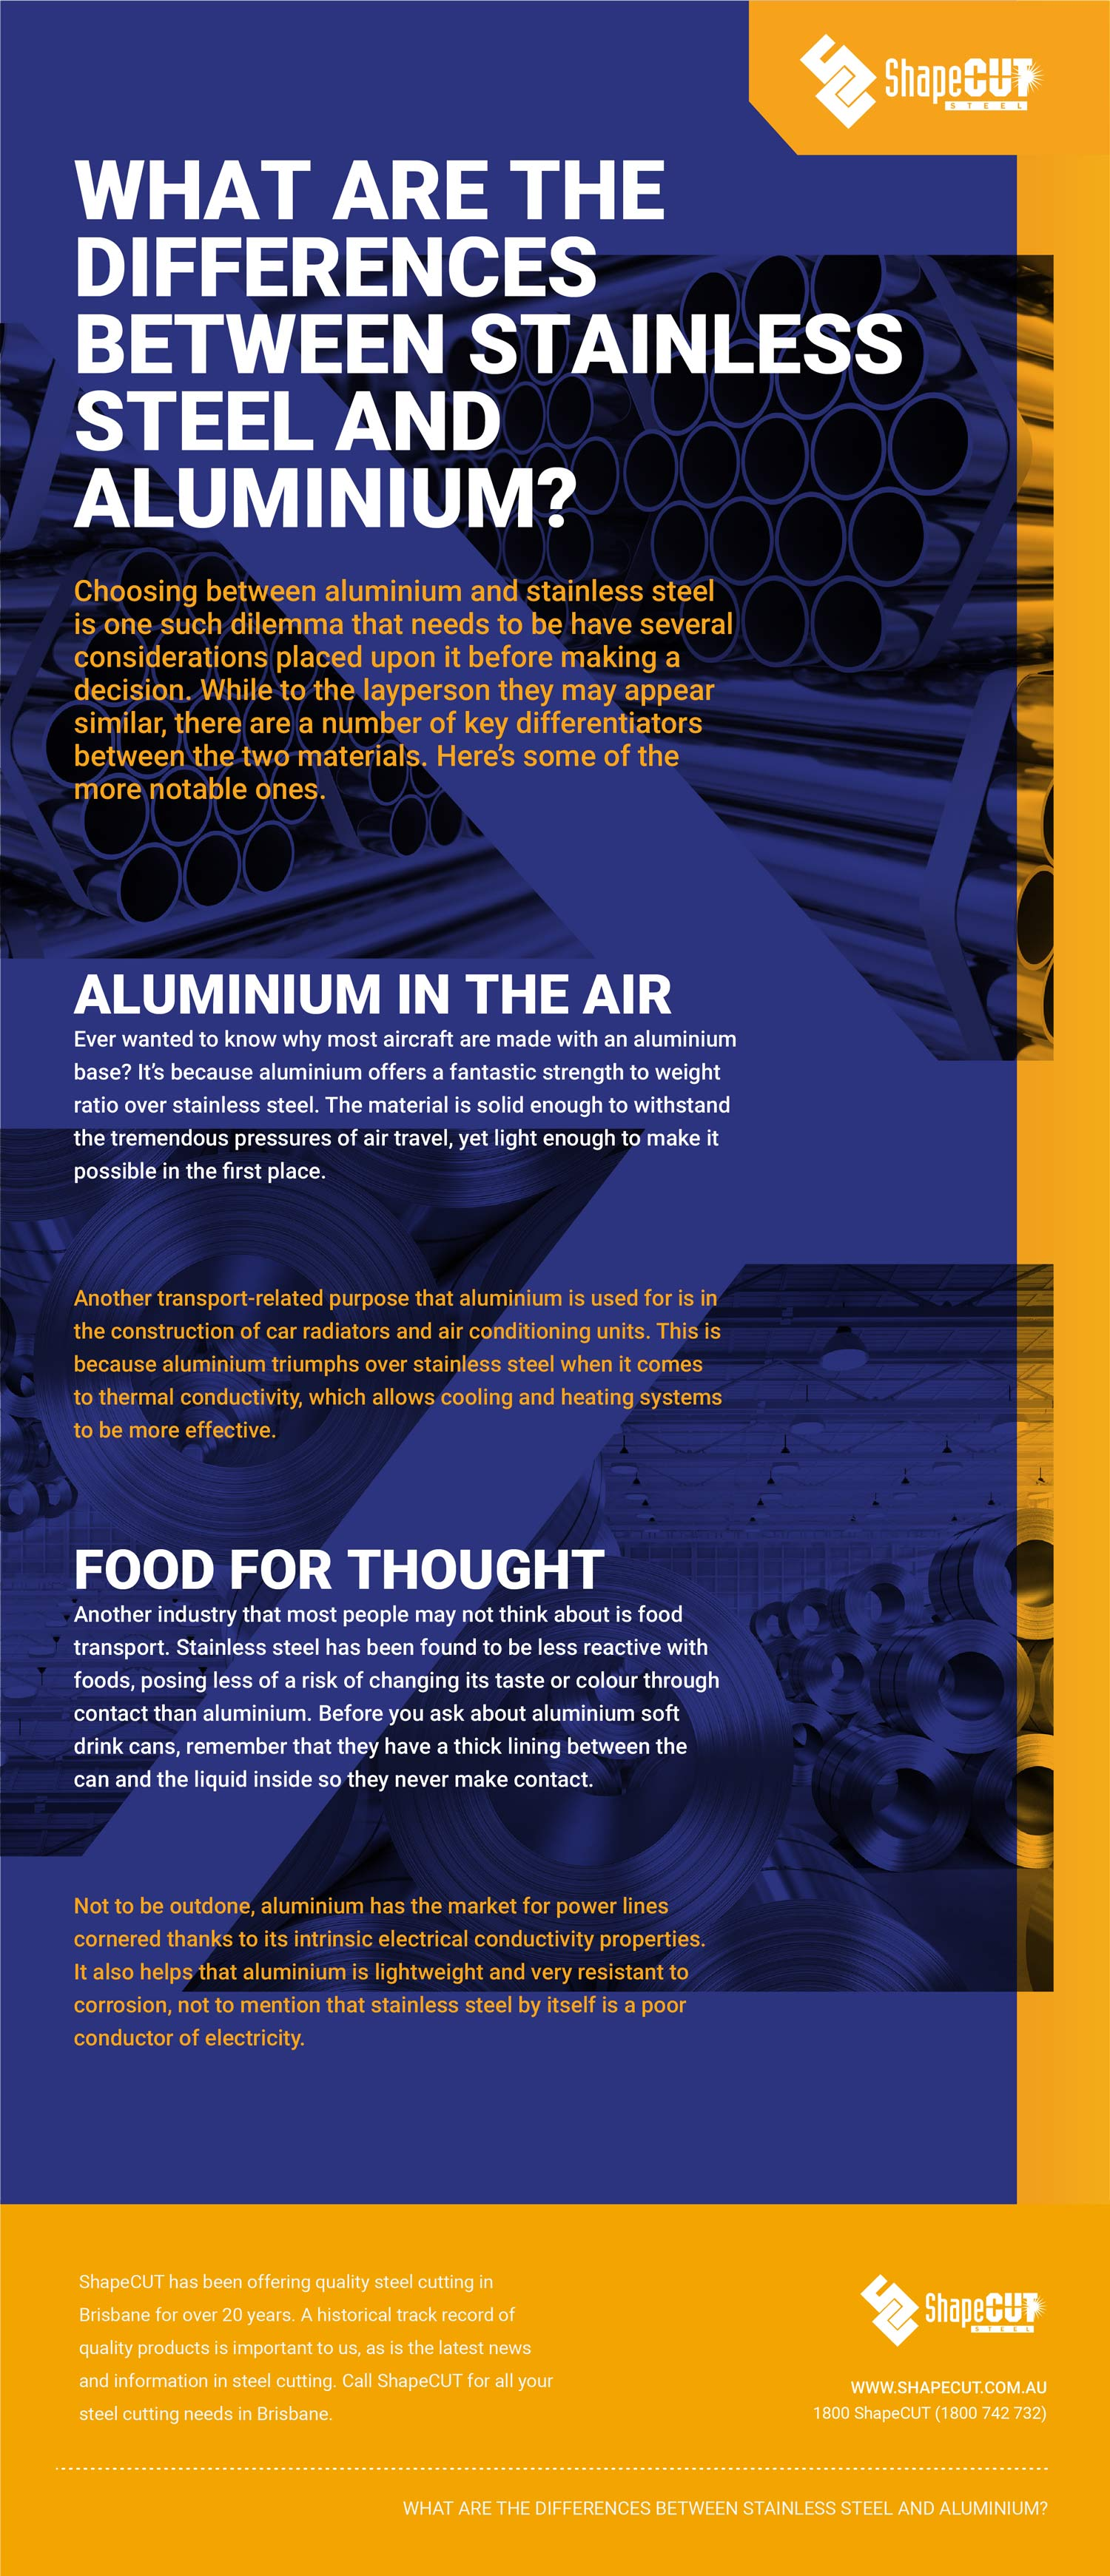 Differences between stainless steel and aluminium